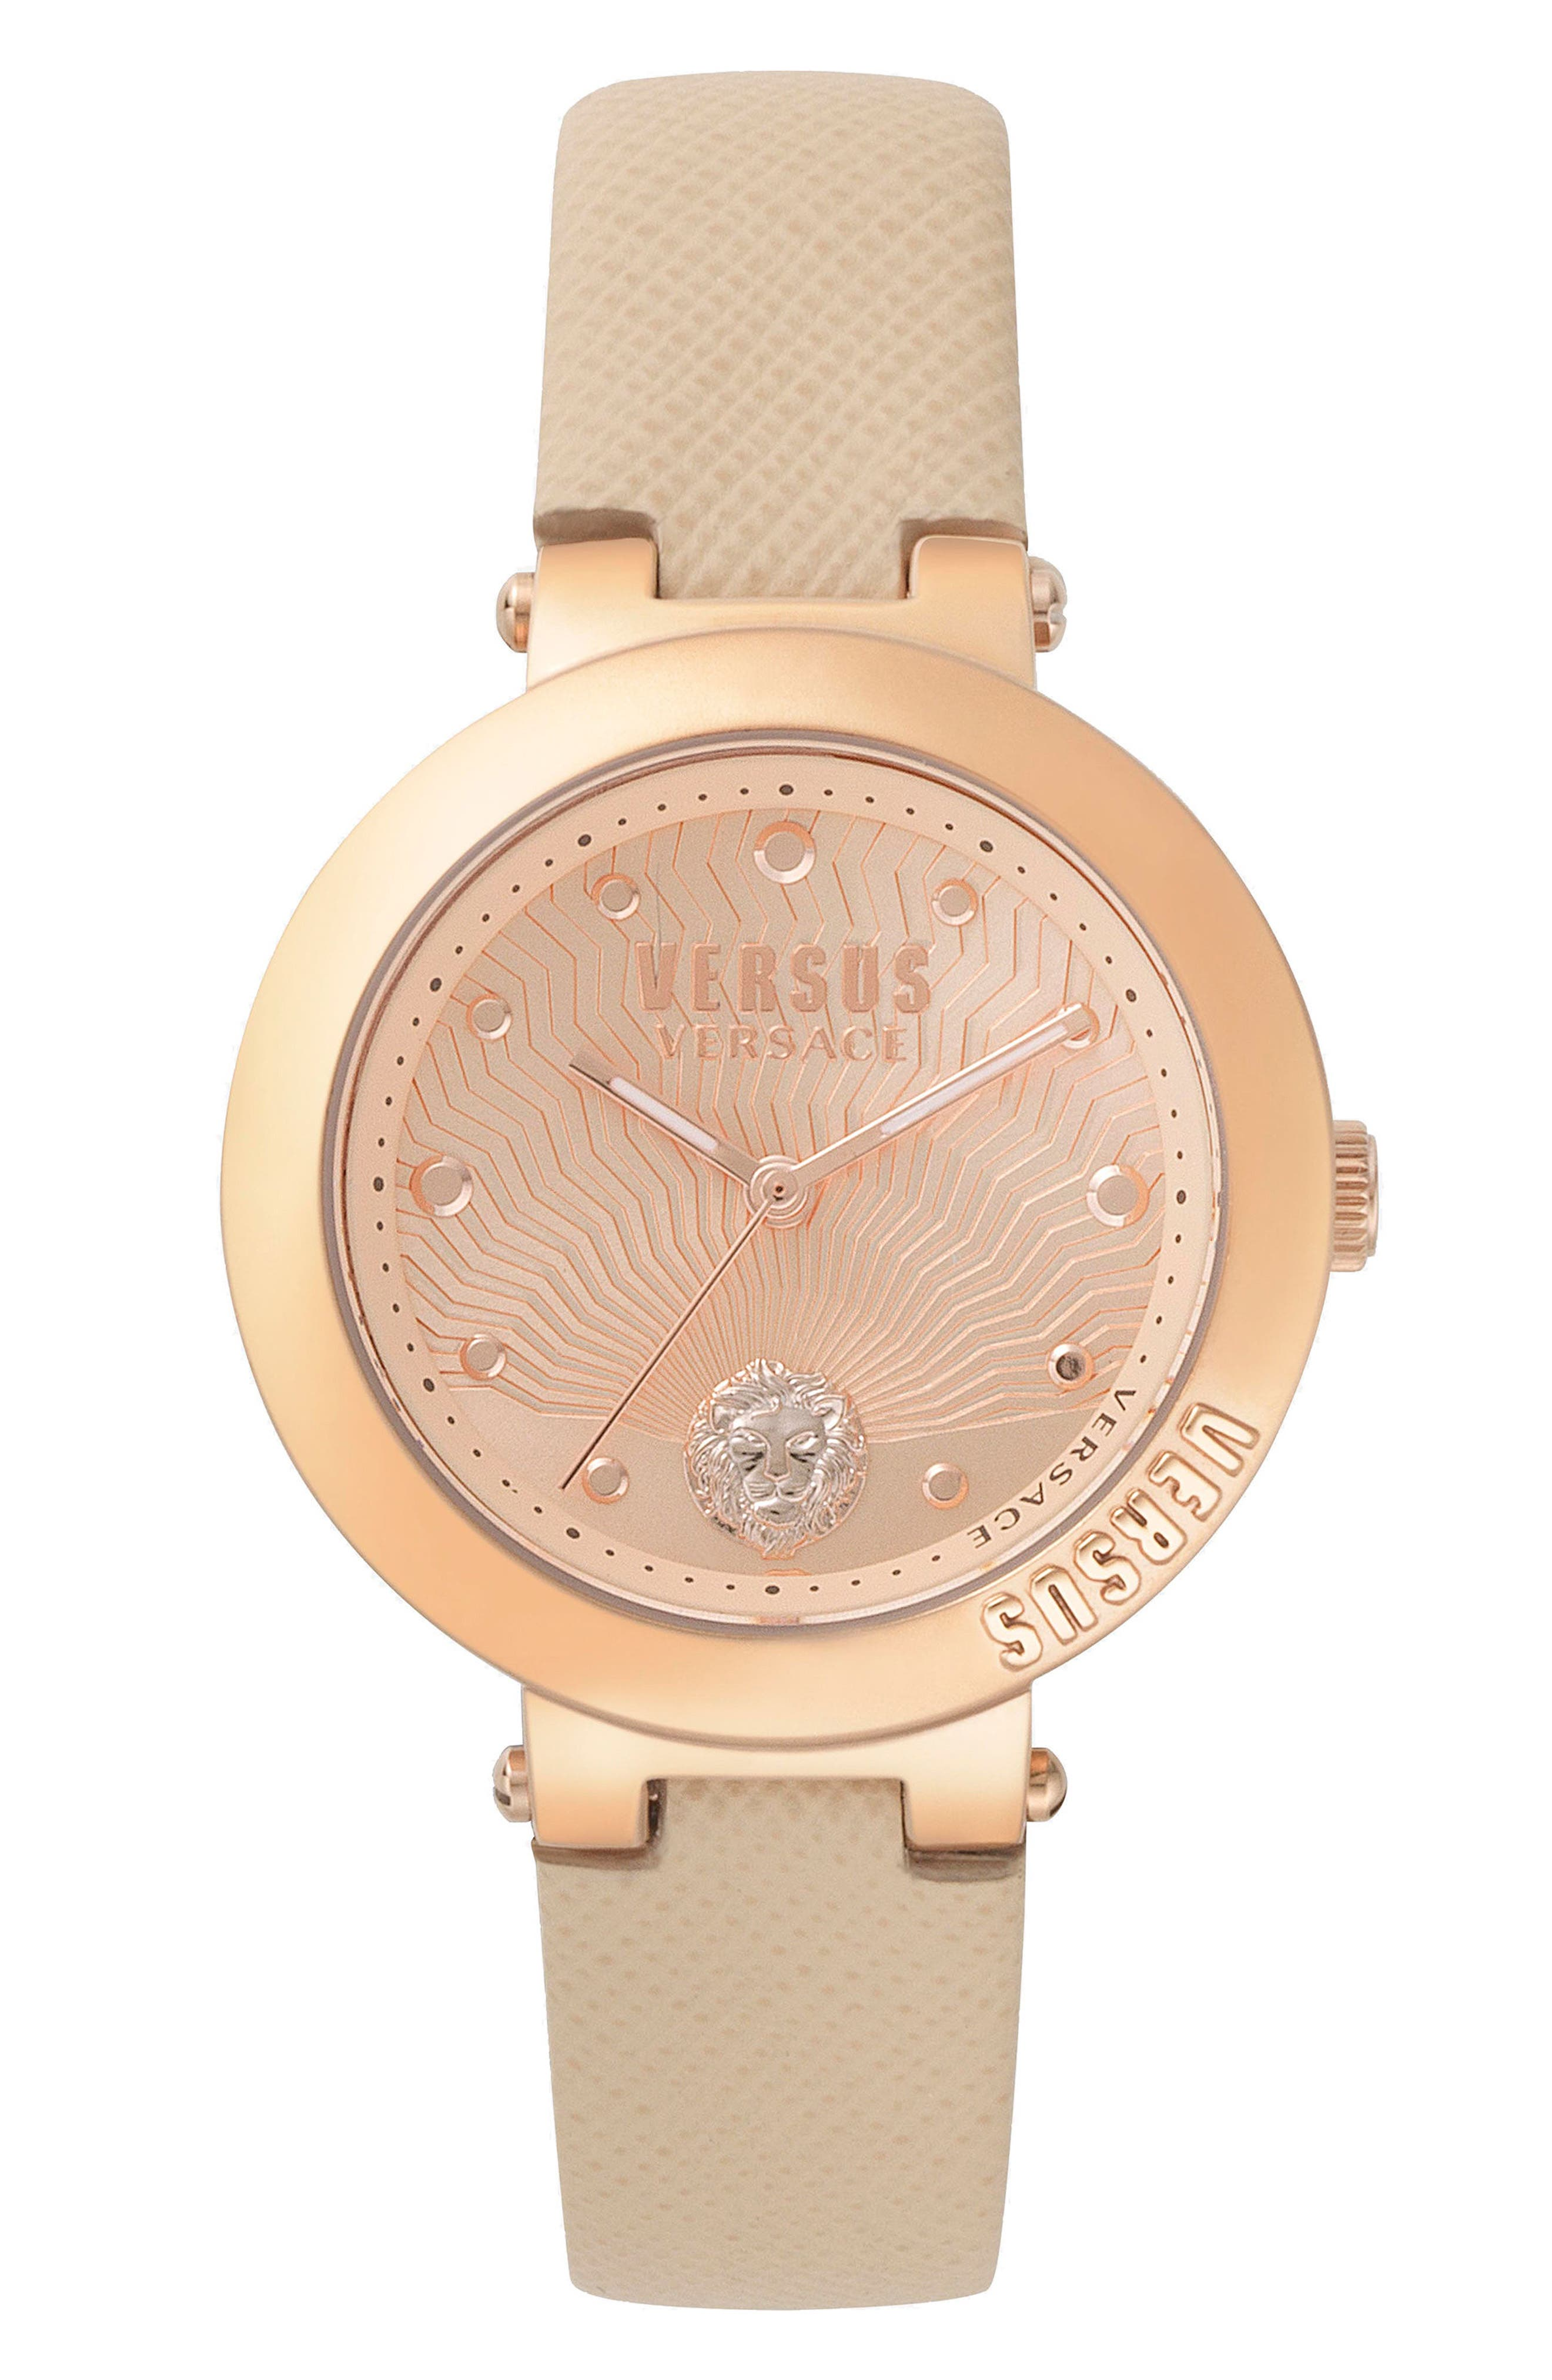 VERSUS by Versace Lantau Island Leather Strap Watch, 36mm,                             Main thumbnail 1, color,                             Rose Gold